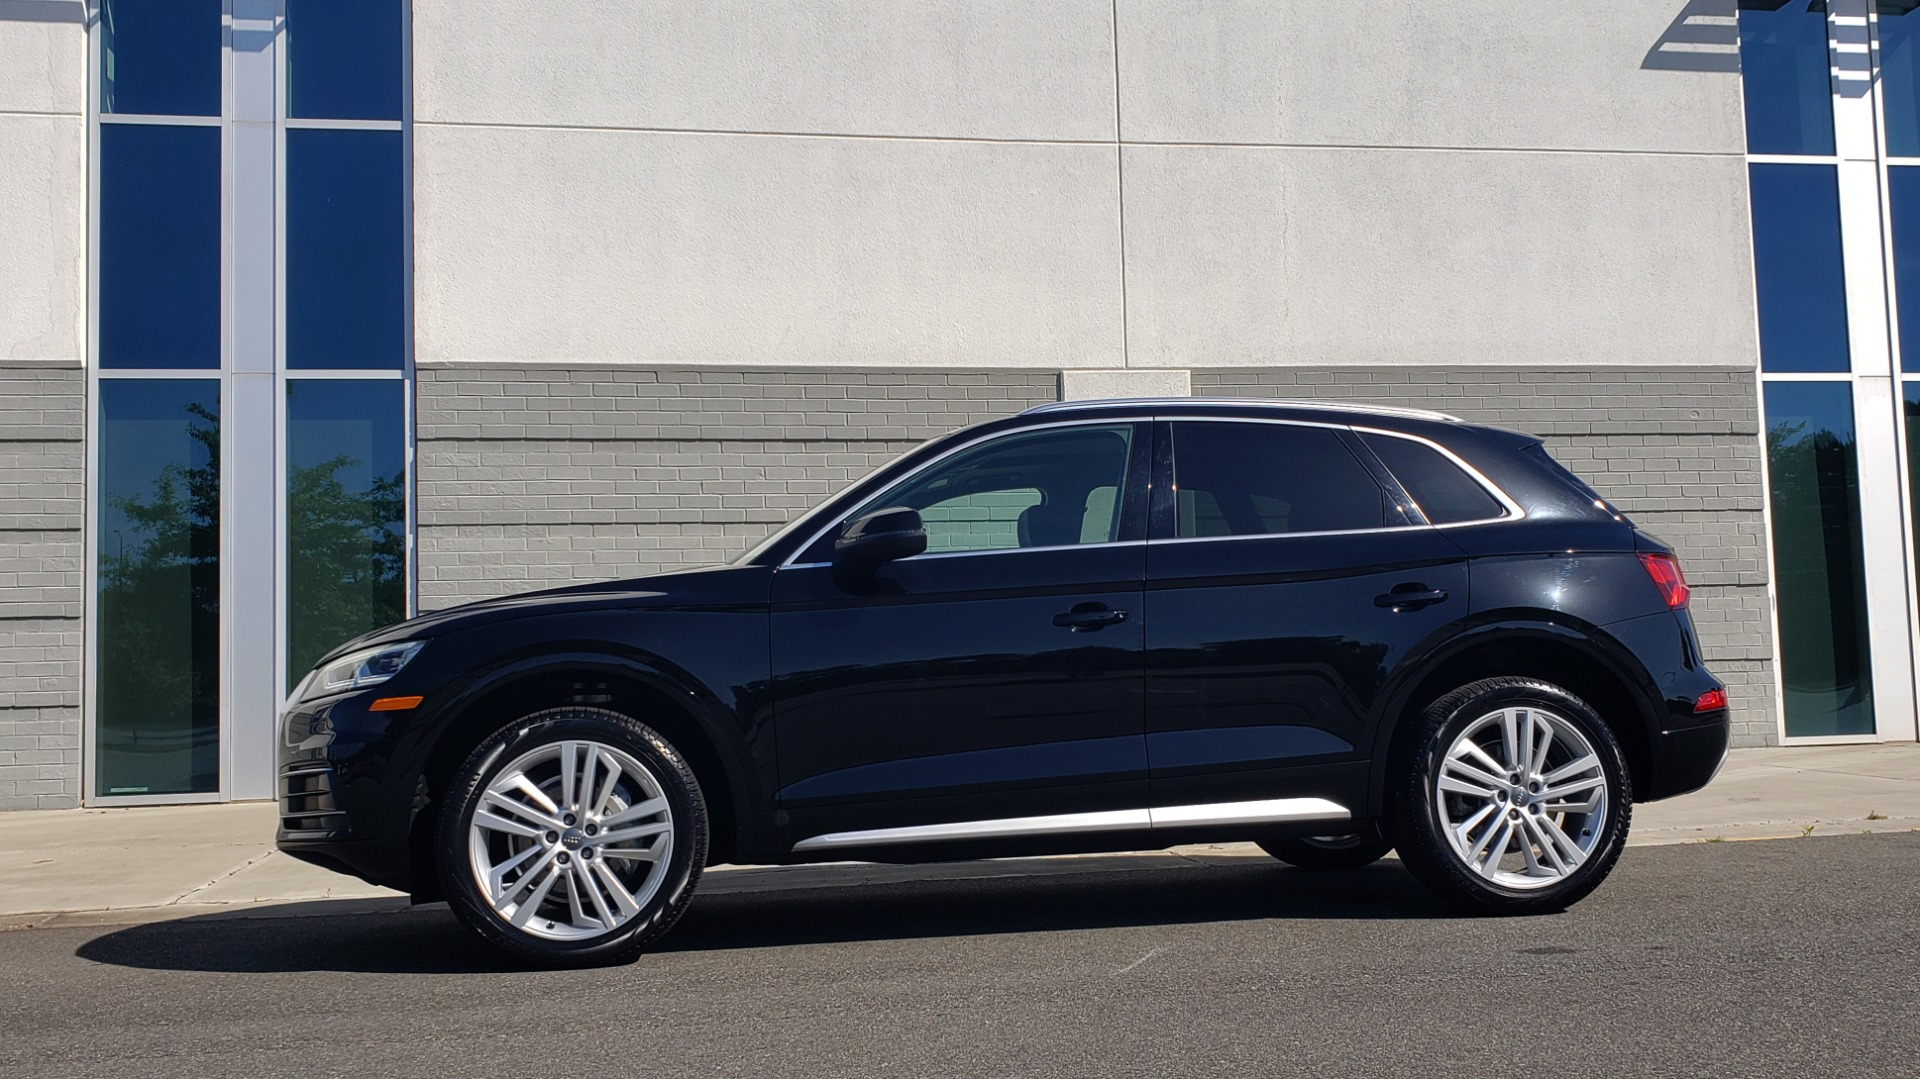 Used 2018 Audi Q5 PREMIUM PLUS / NAV / B&O SND / CLD WTHR / SUNROOF / REARVIEW for sale Sold at Formula Imports in Charlotte NC 28227 5